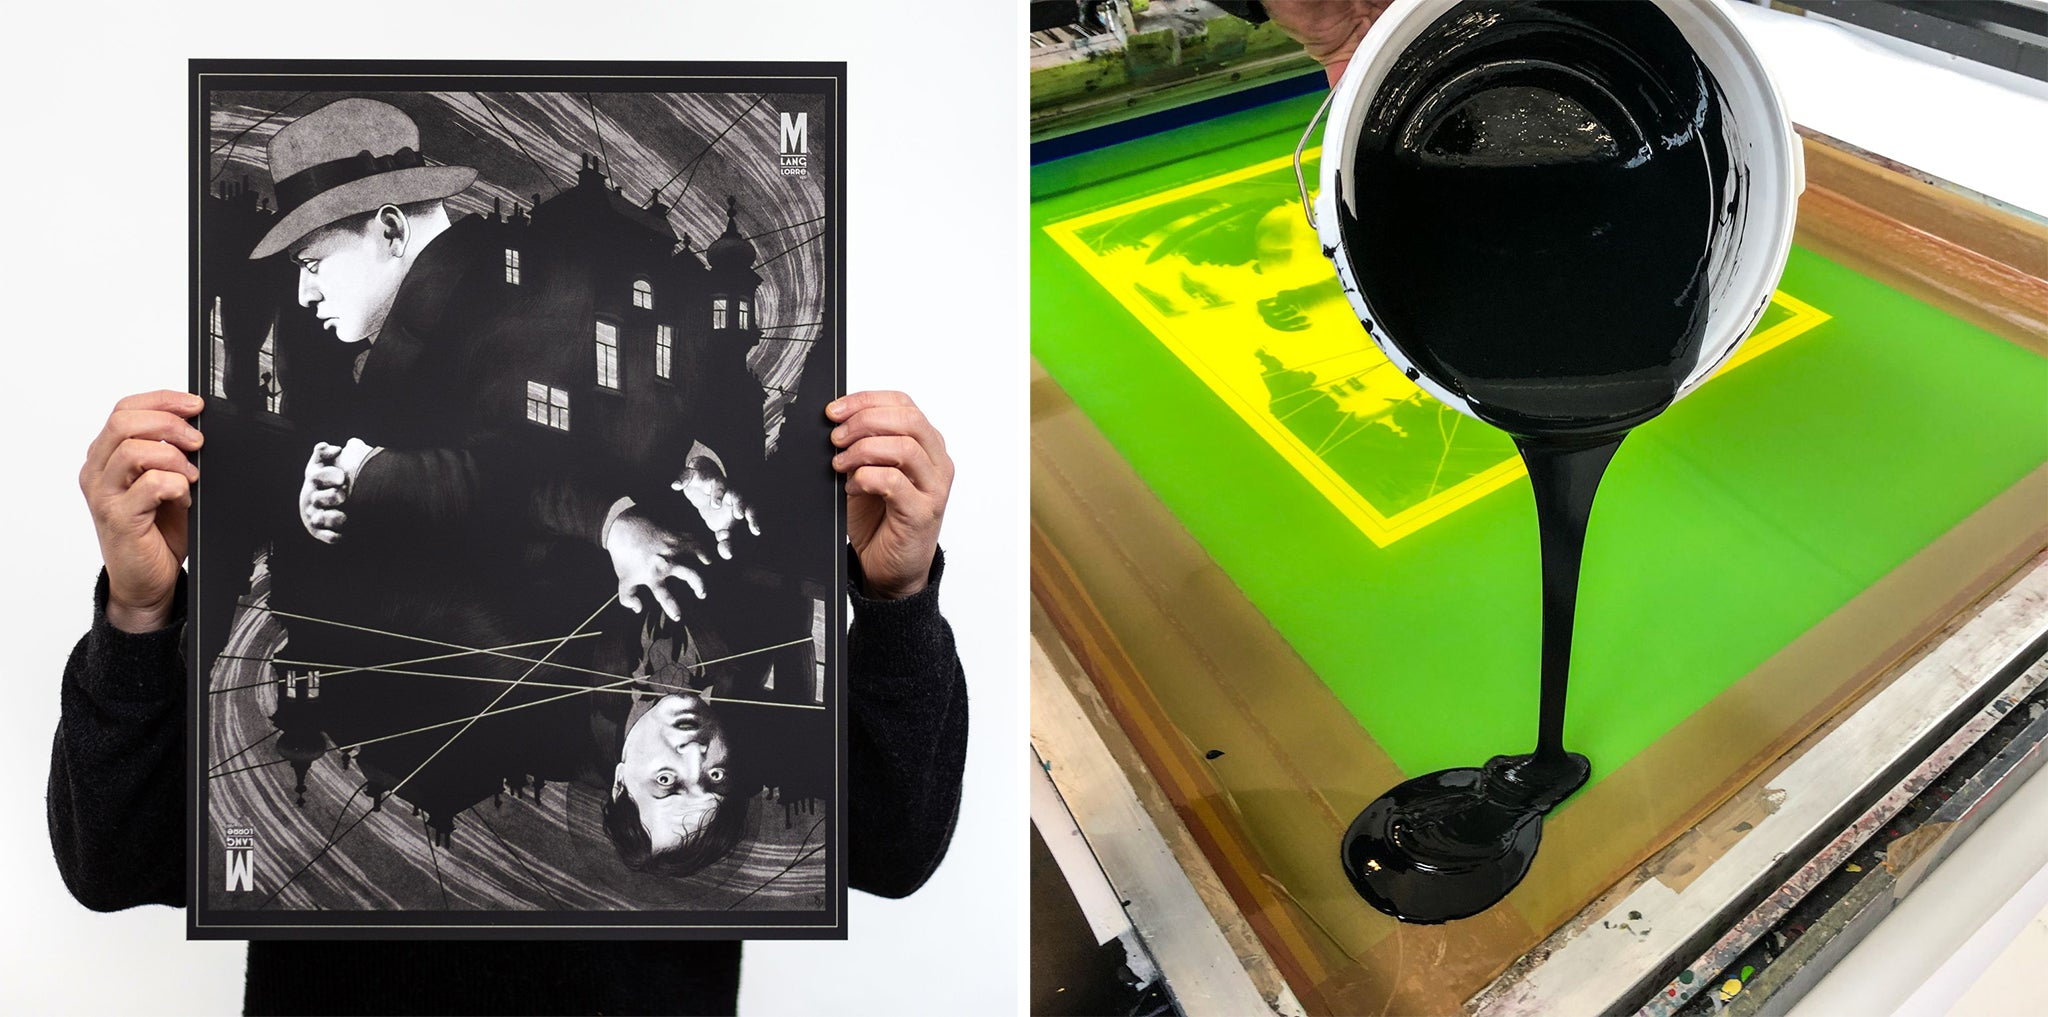 M by Peter Diamond. Screen printed by White Duck Editions